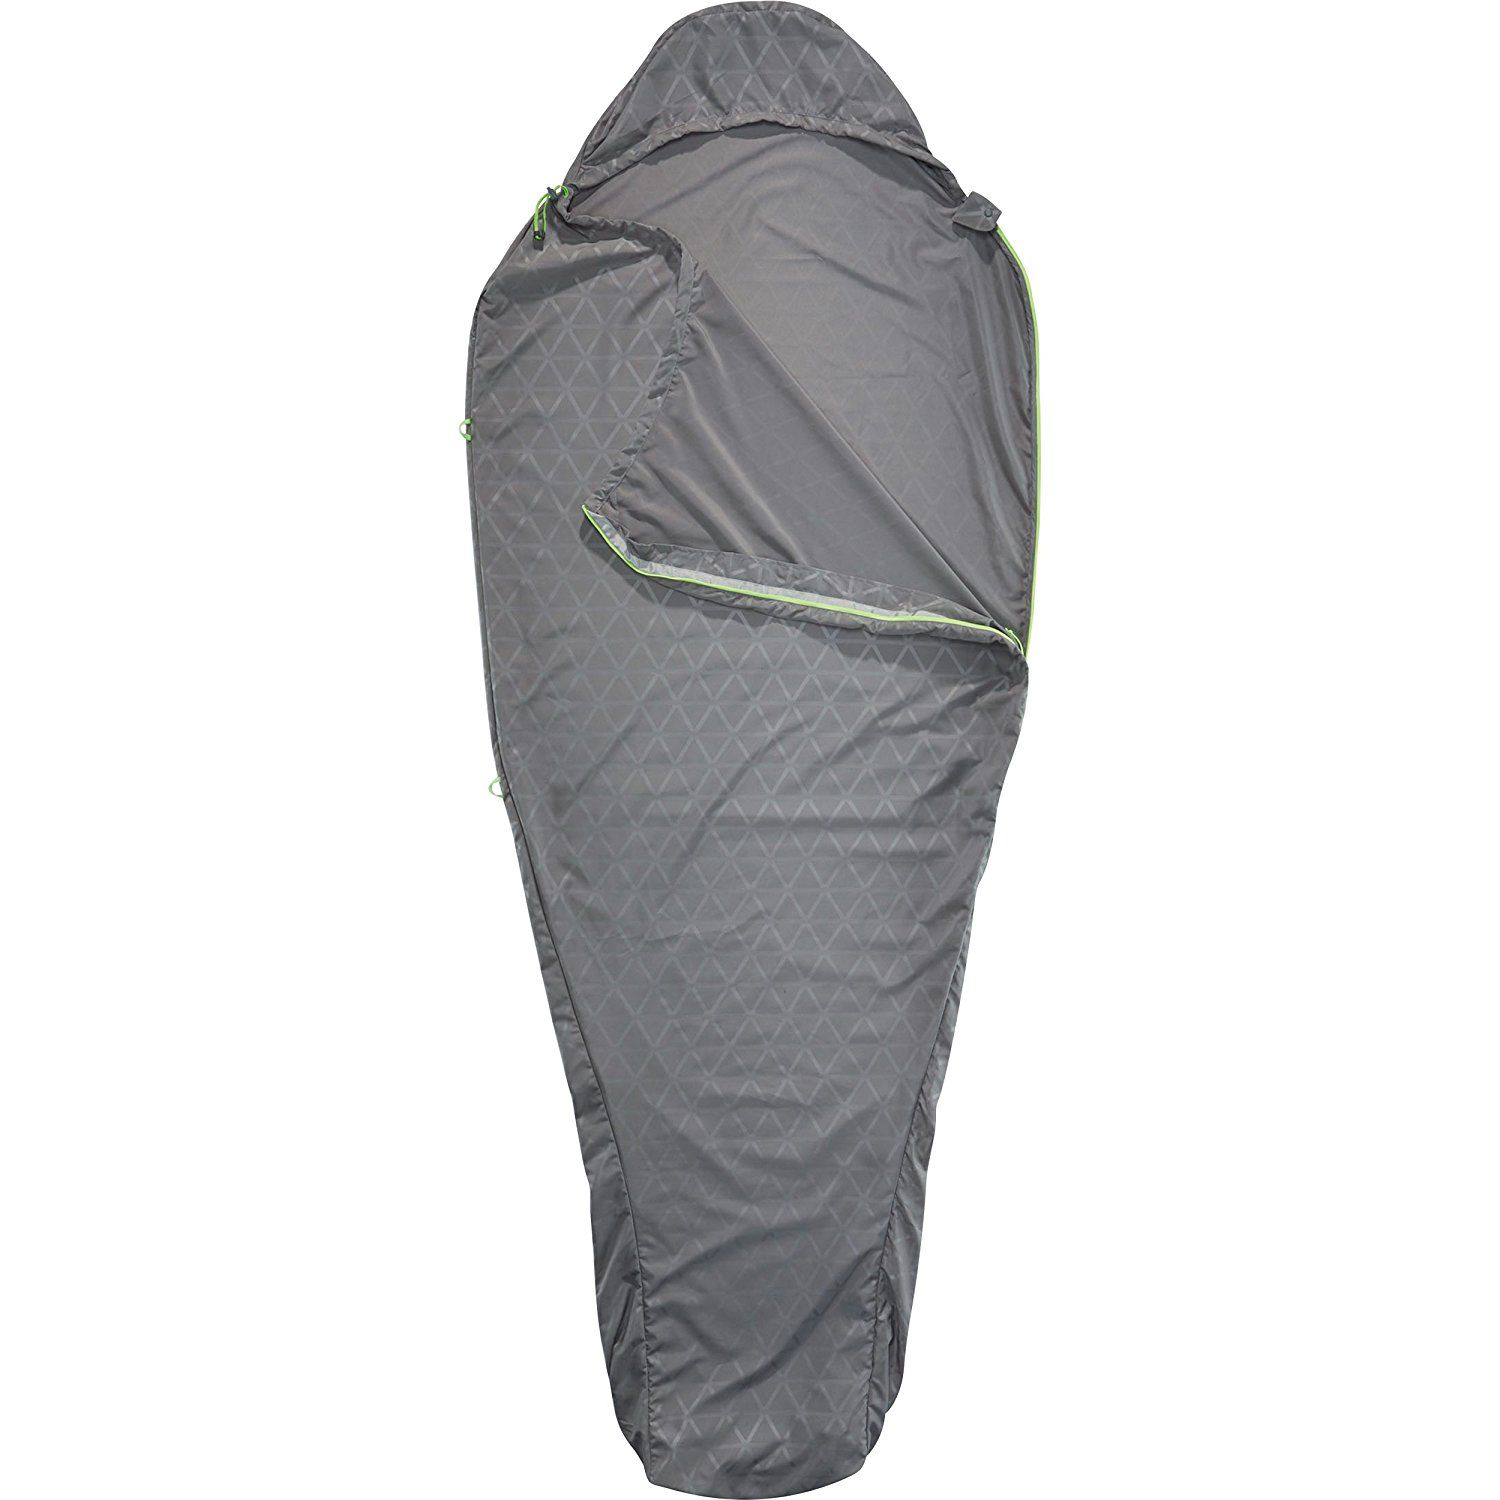 536fa8769e The 8 Best Sleeping Bag Liners of 2019